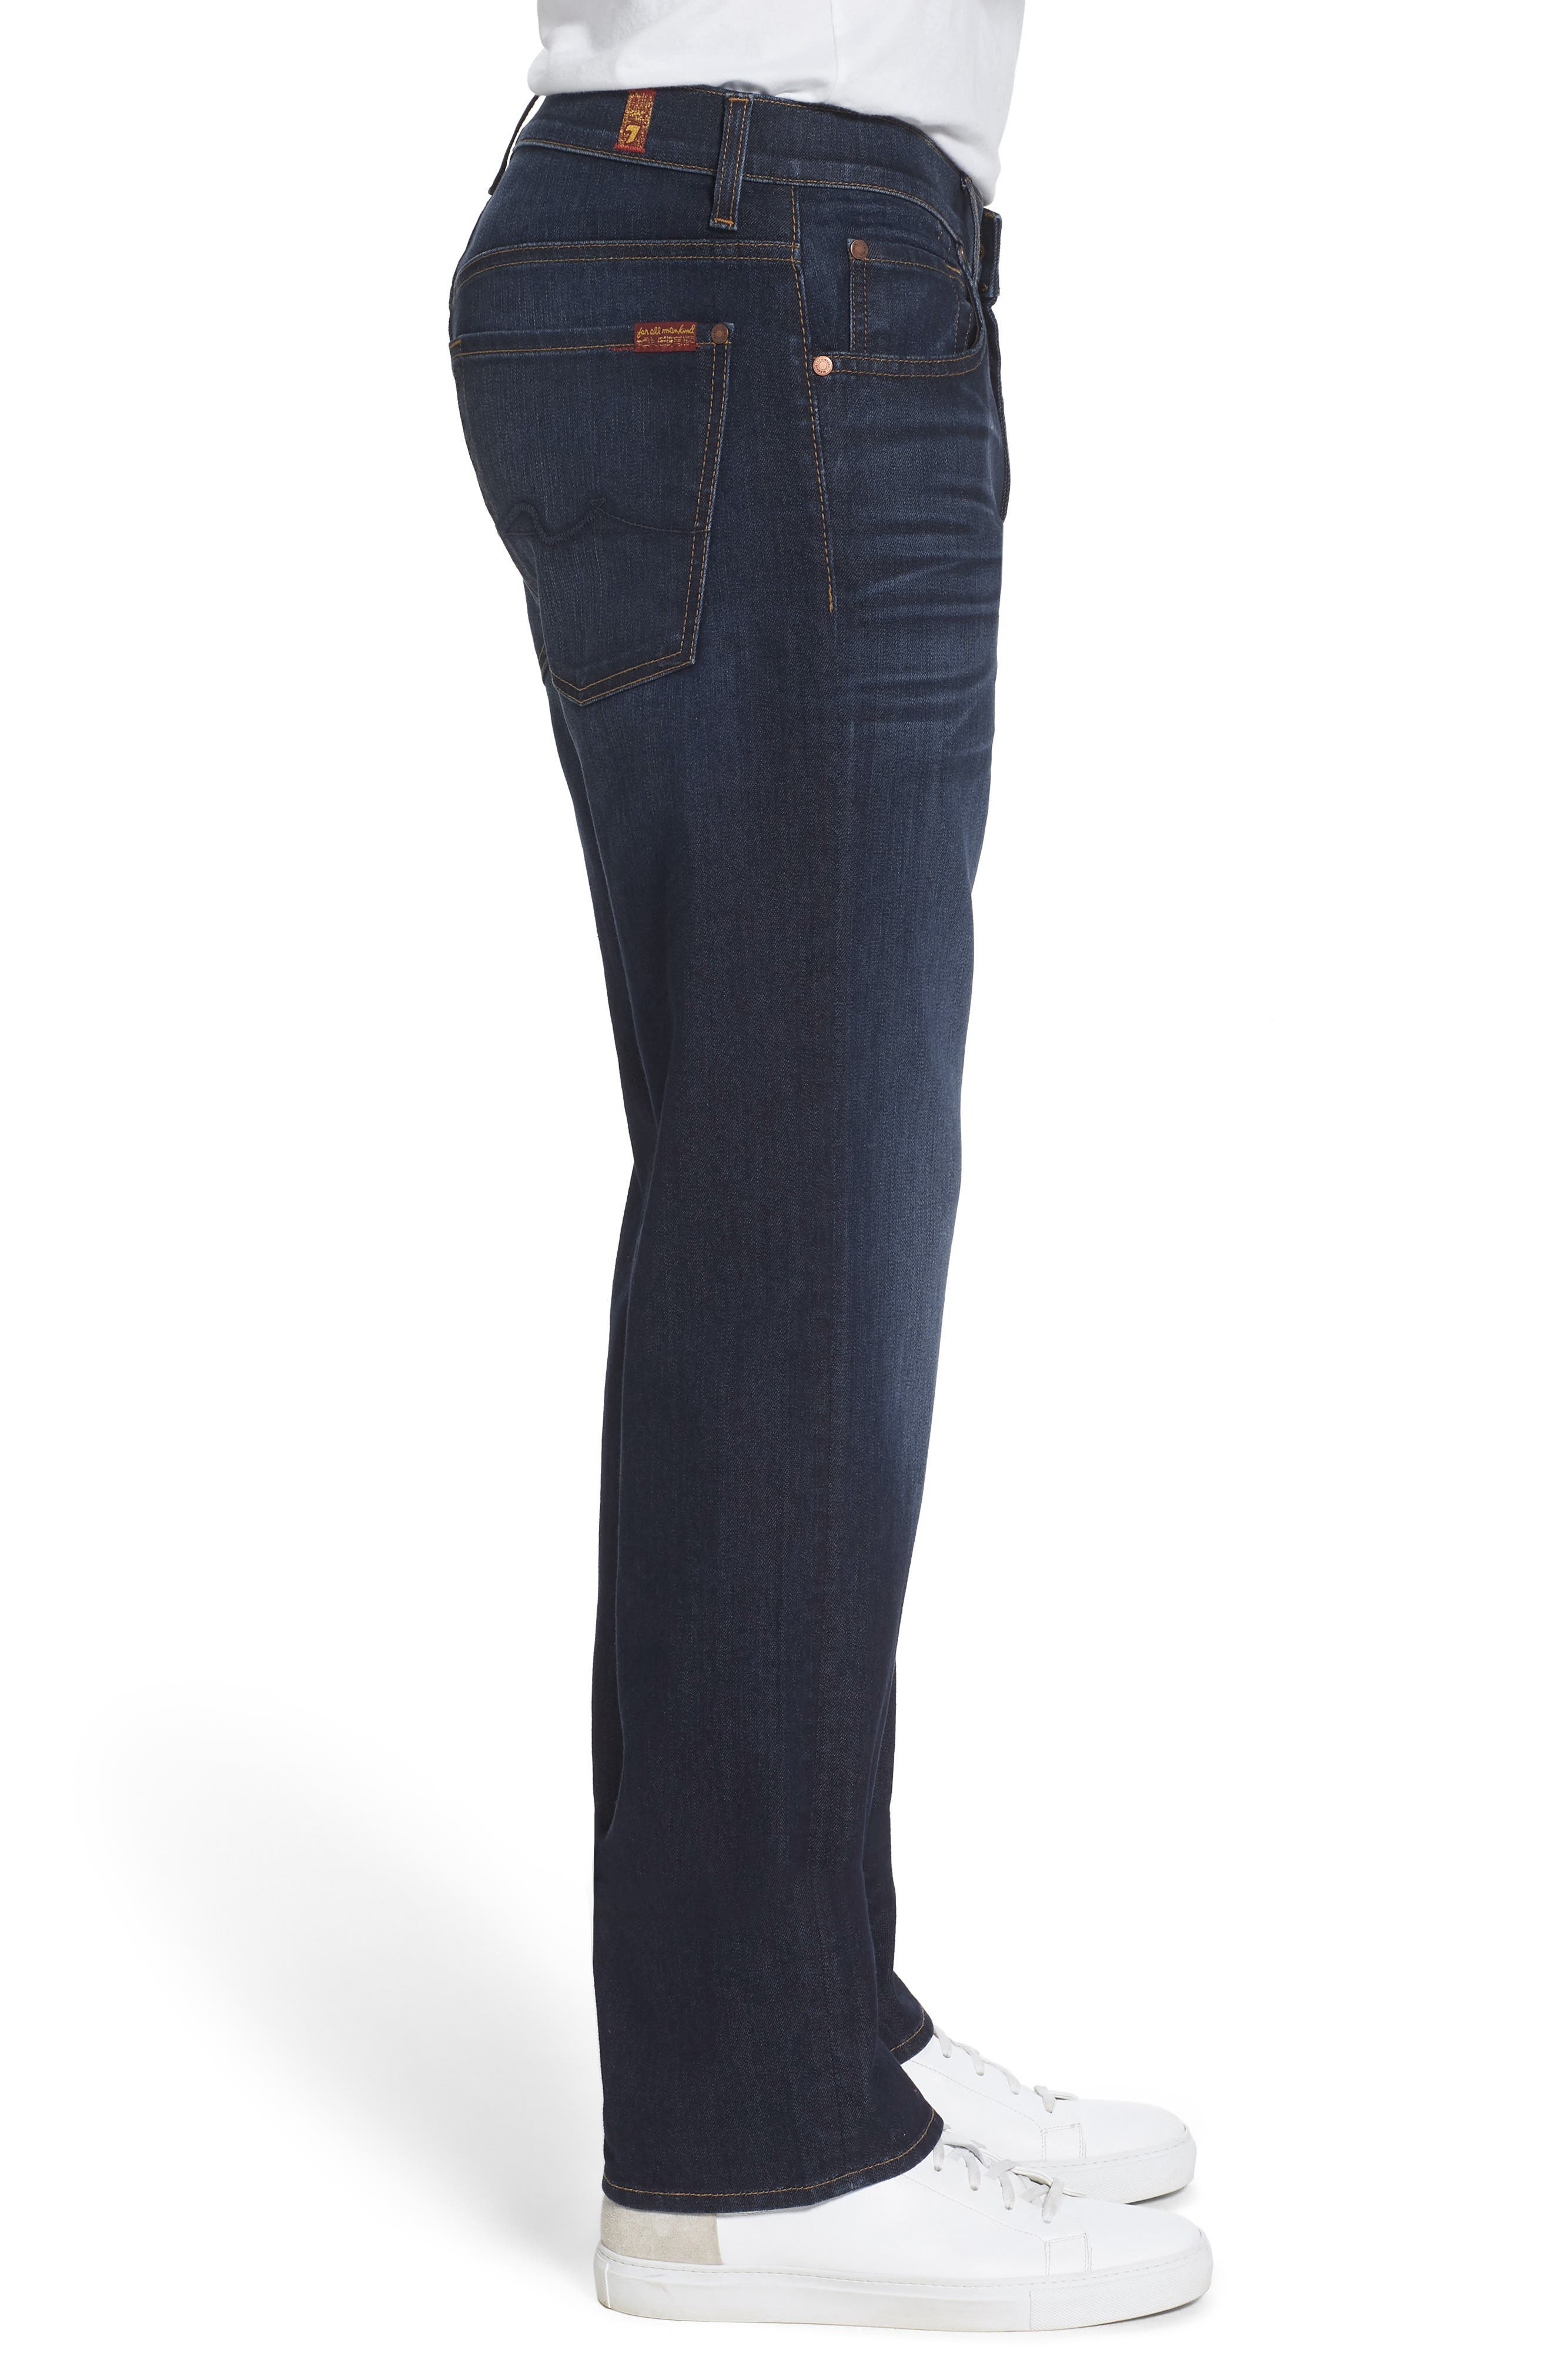 Airweft Austyn Relaxed Straight Leg Jeans,                             Alternate thumbnail 3, color,                             400